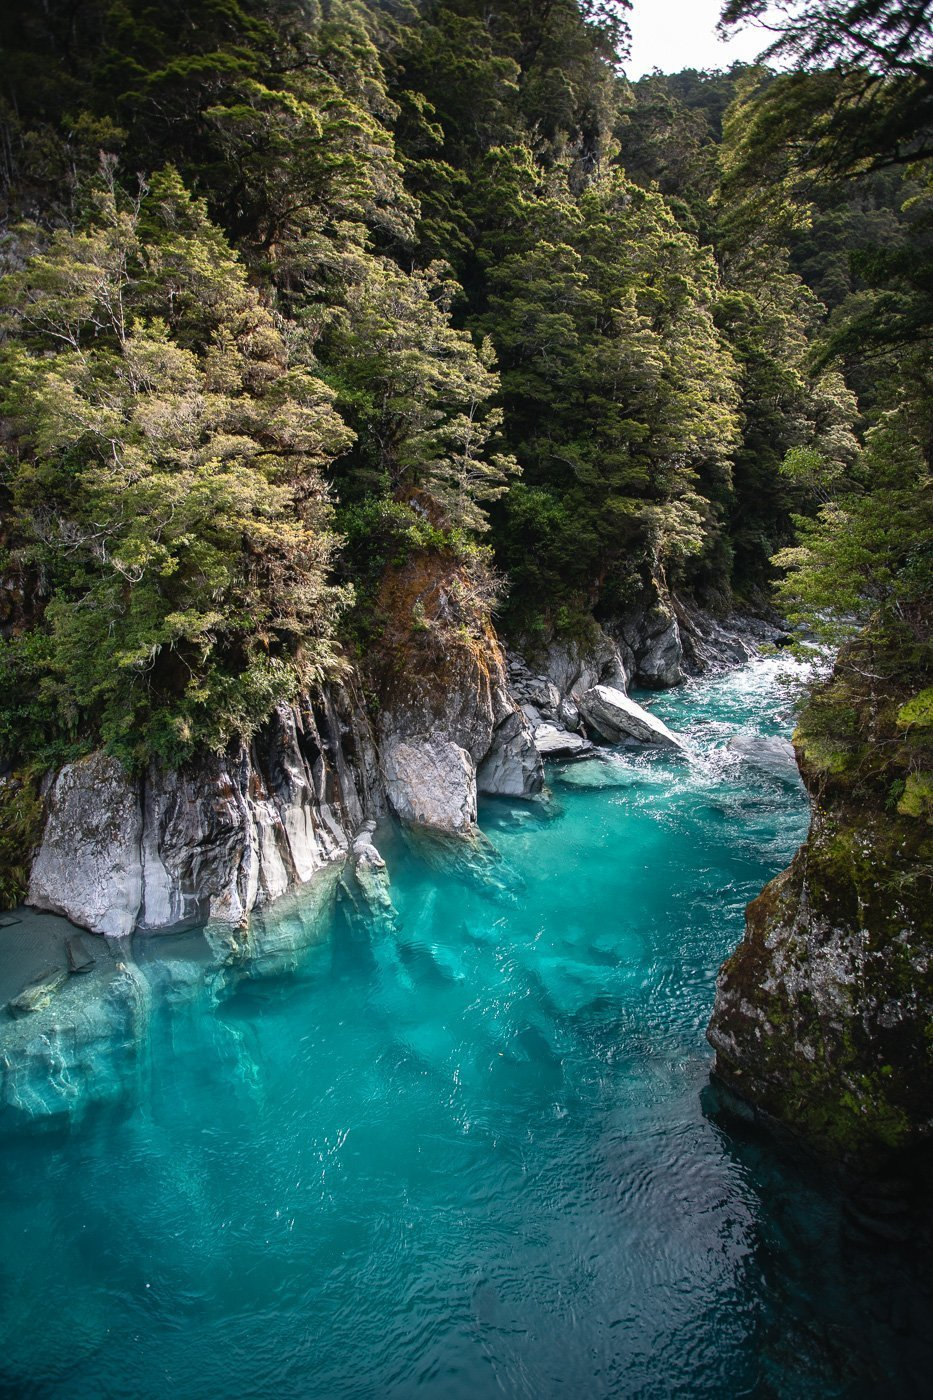 The blue pools swimming area, Mount Aspiring National Park